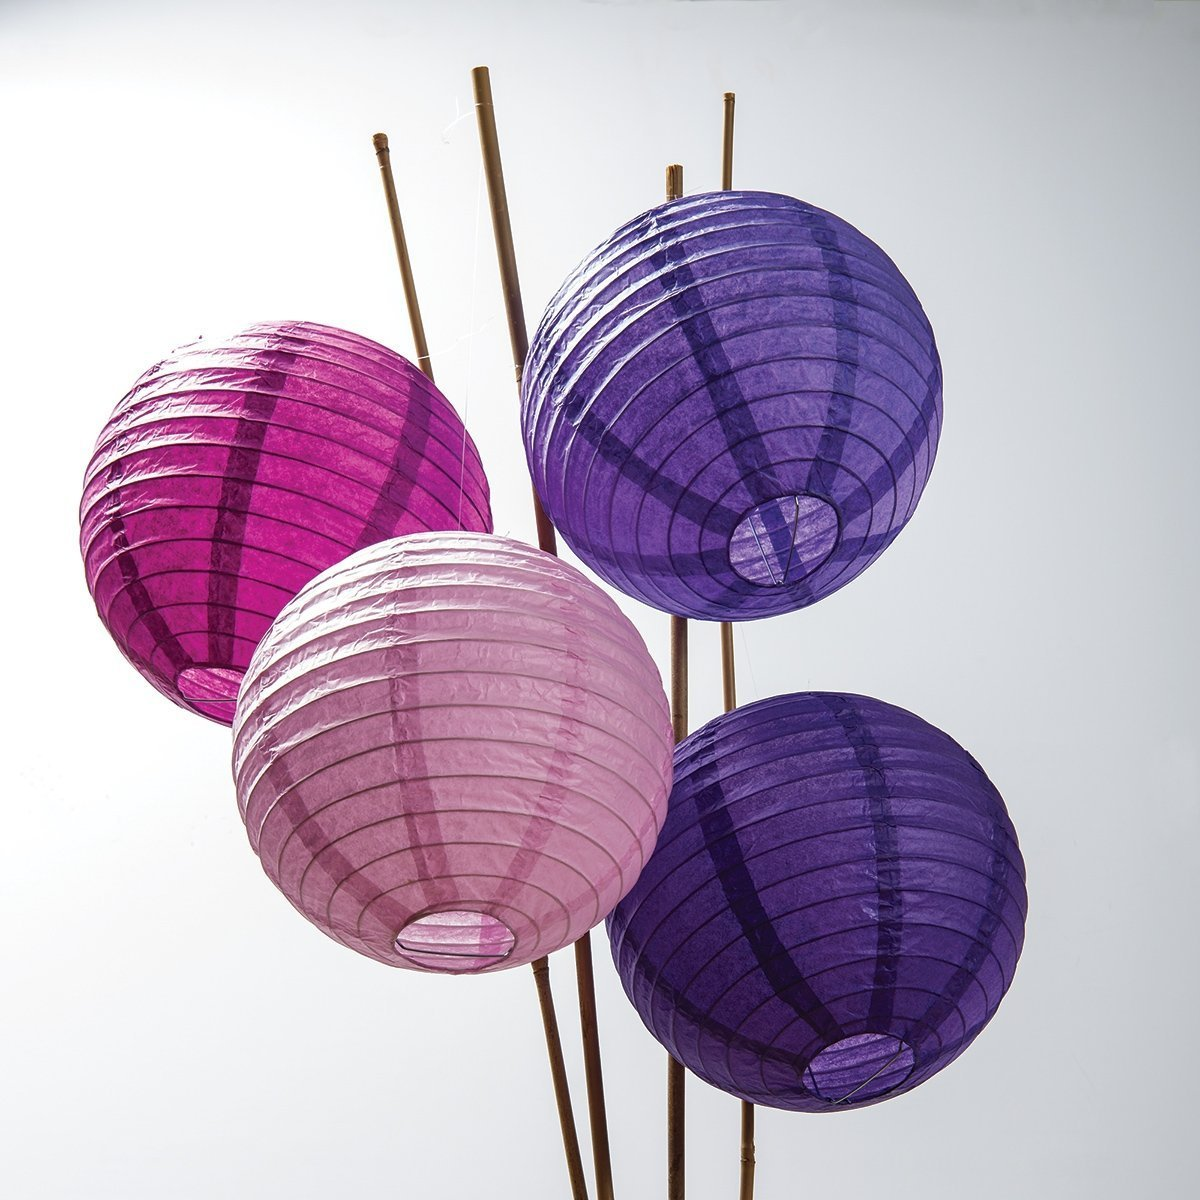 Sopeace 17 PCS 8'' 10'' Lavender Purple Pink White Tissue Paper Pom Pom Flowers and Paper Lanterns Party Decoration by Sopeace (Image #4)